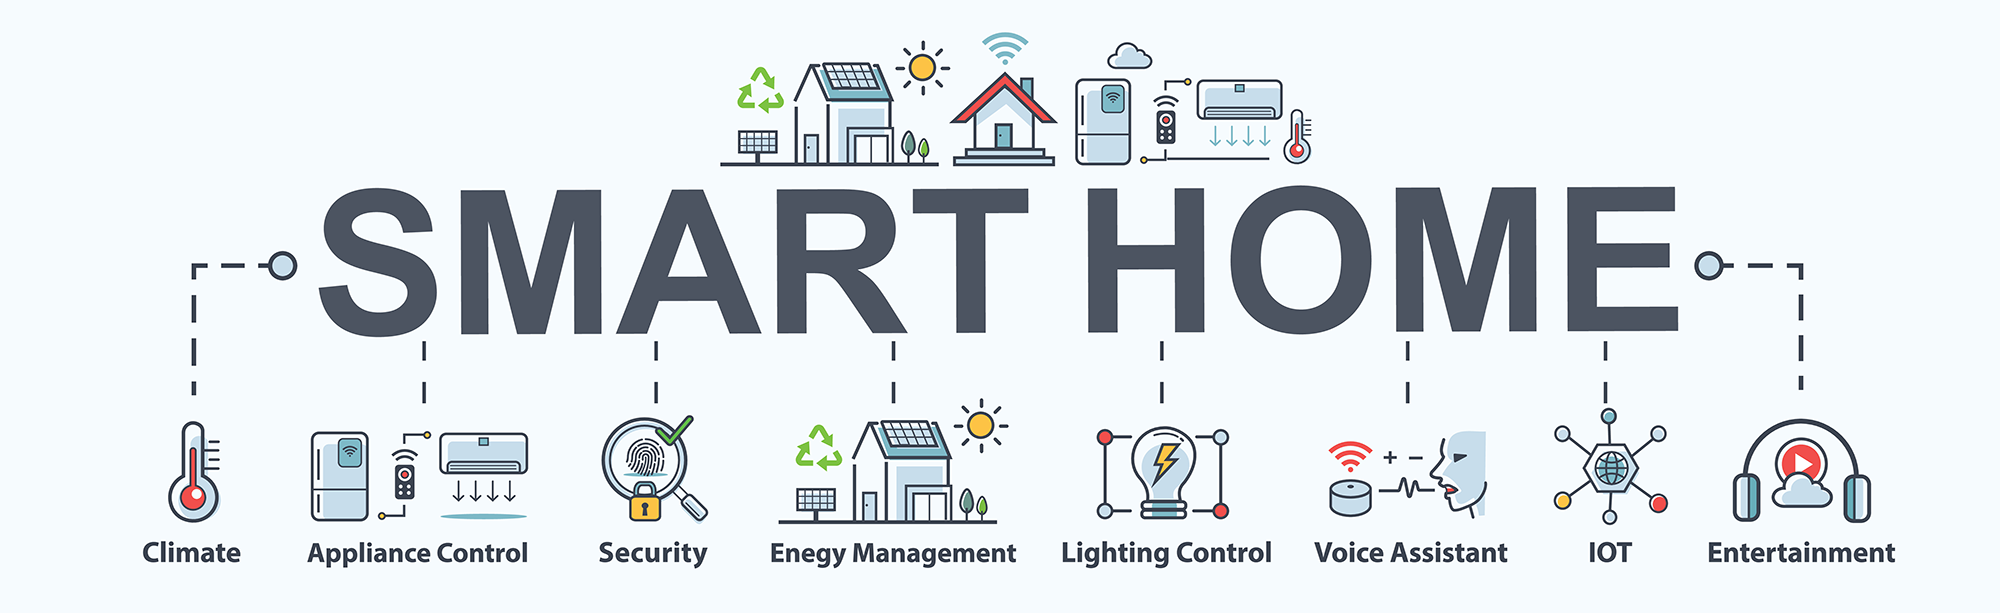 HVAC and the IoT (Internet of Things)